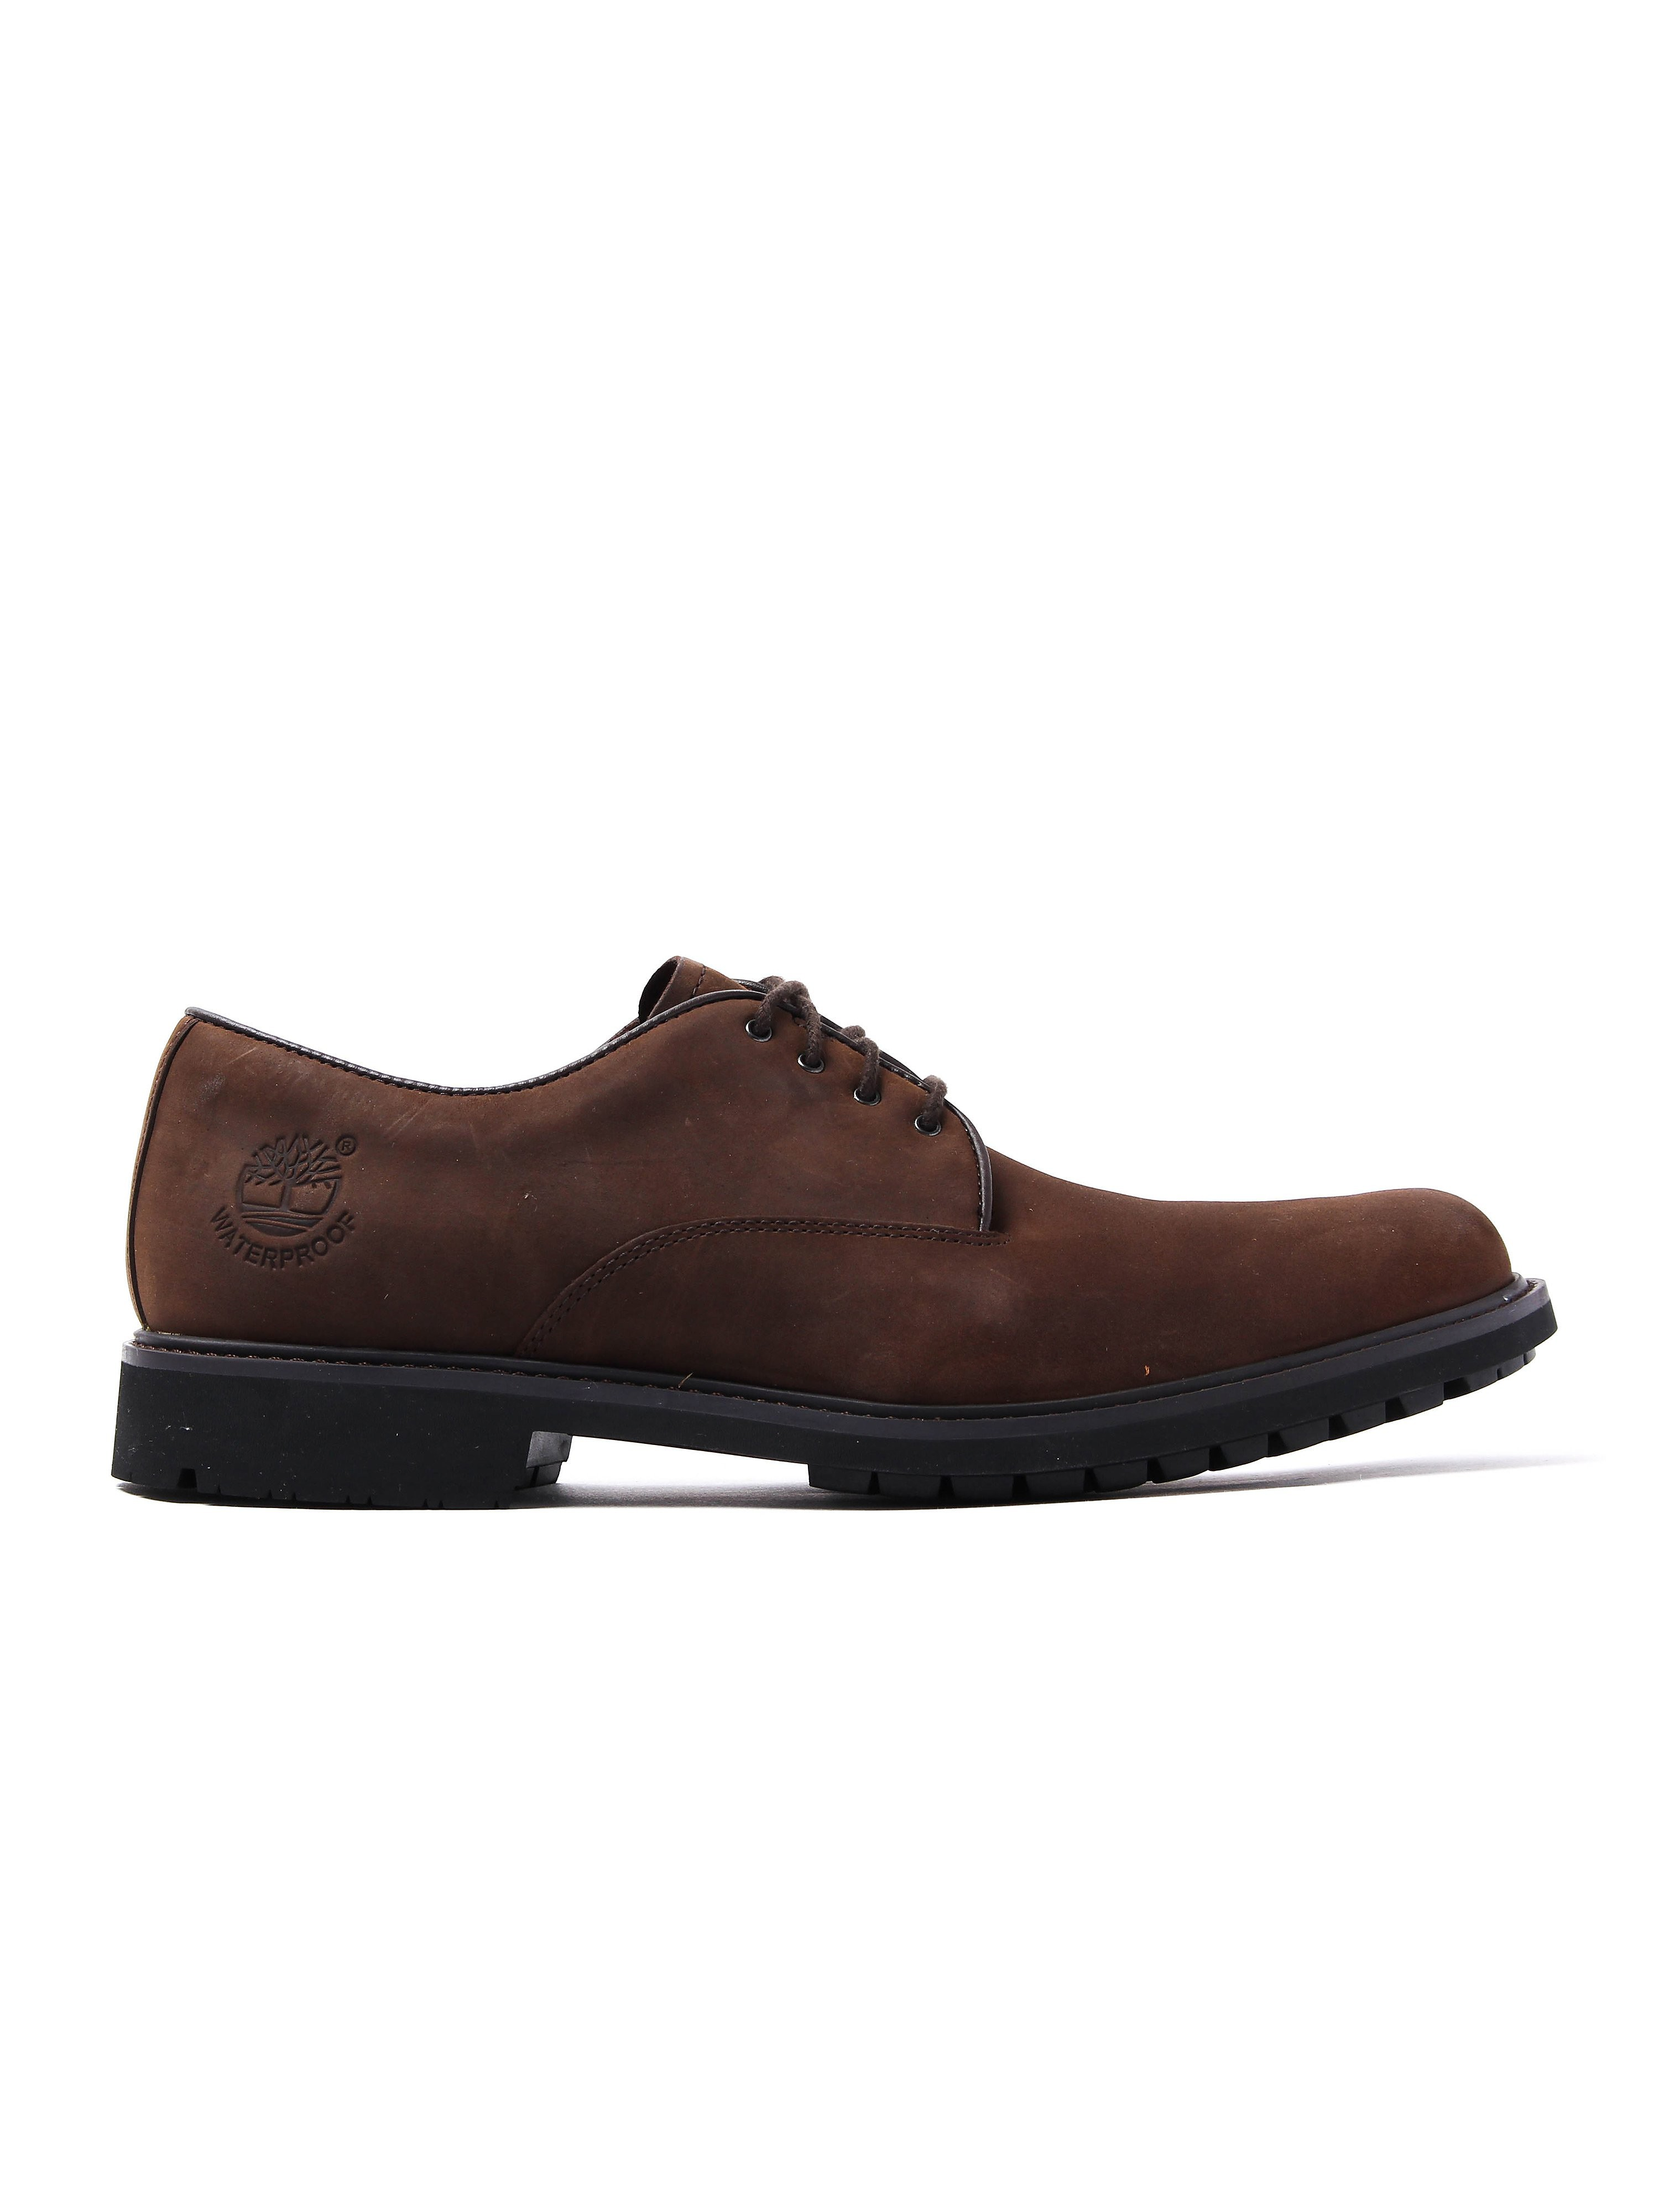 Timberland Mens Stormbuck Plain Toe Oxford - Dark Brown